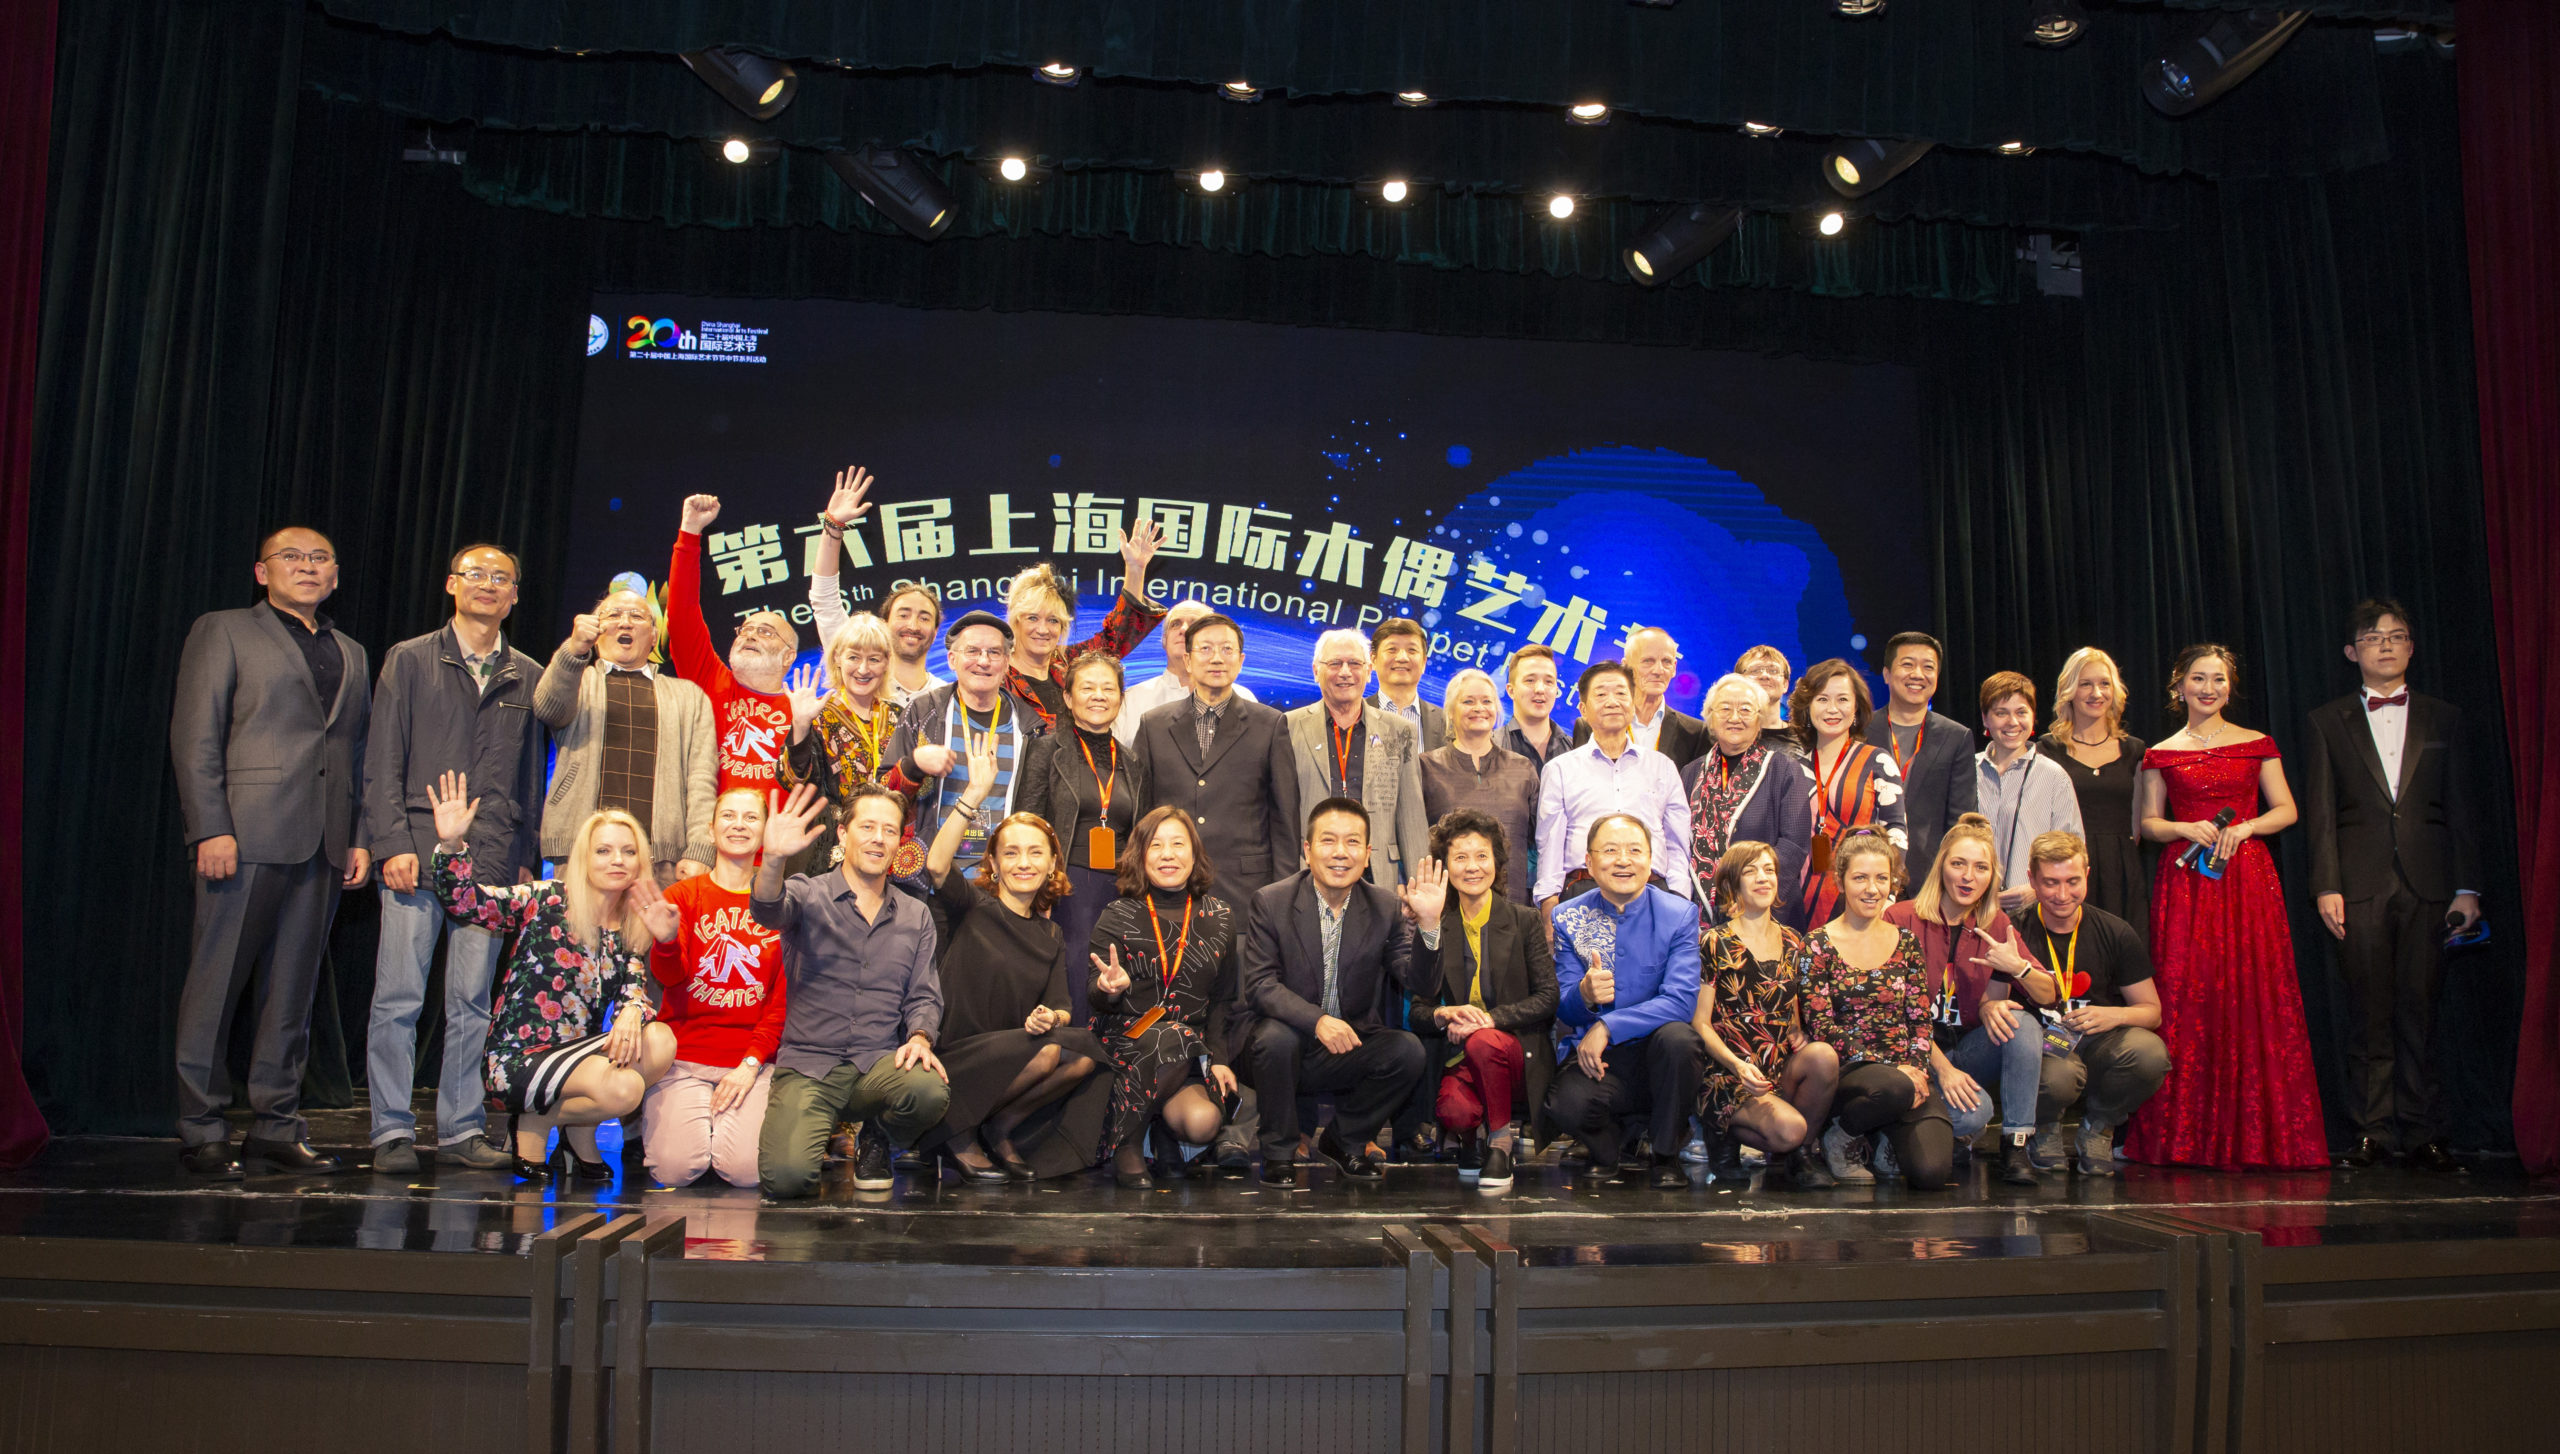 Shanghai puppetfestival 2018